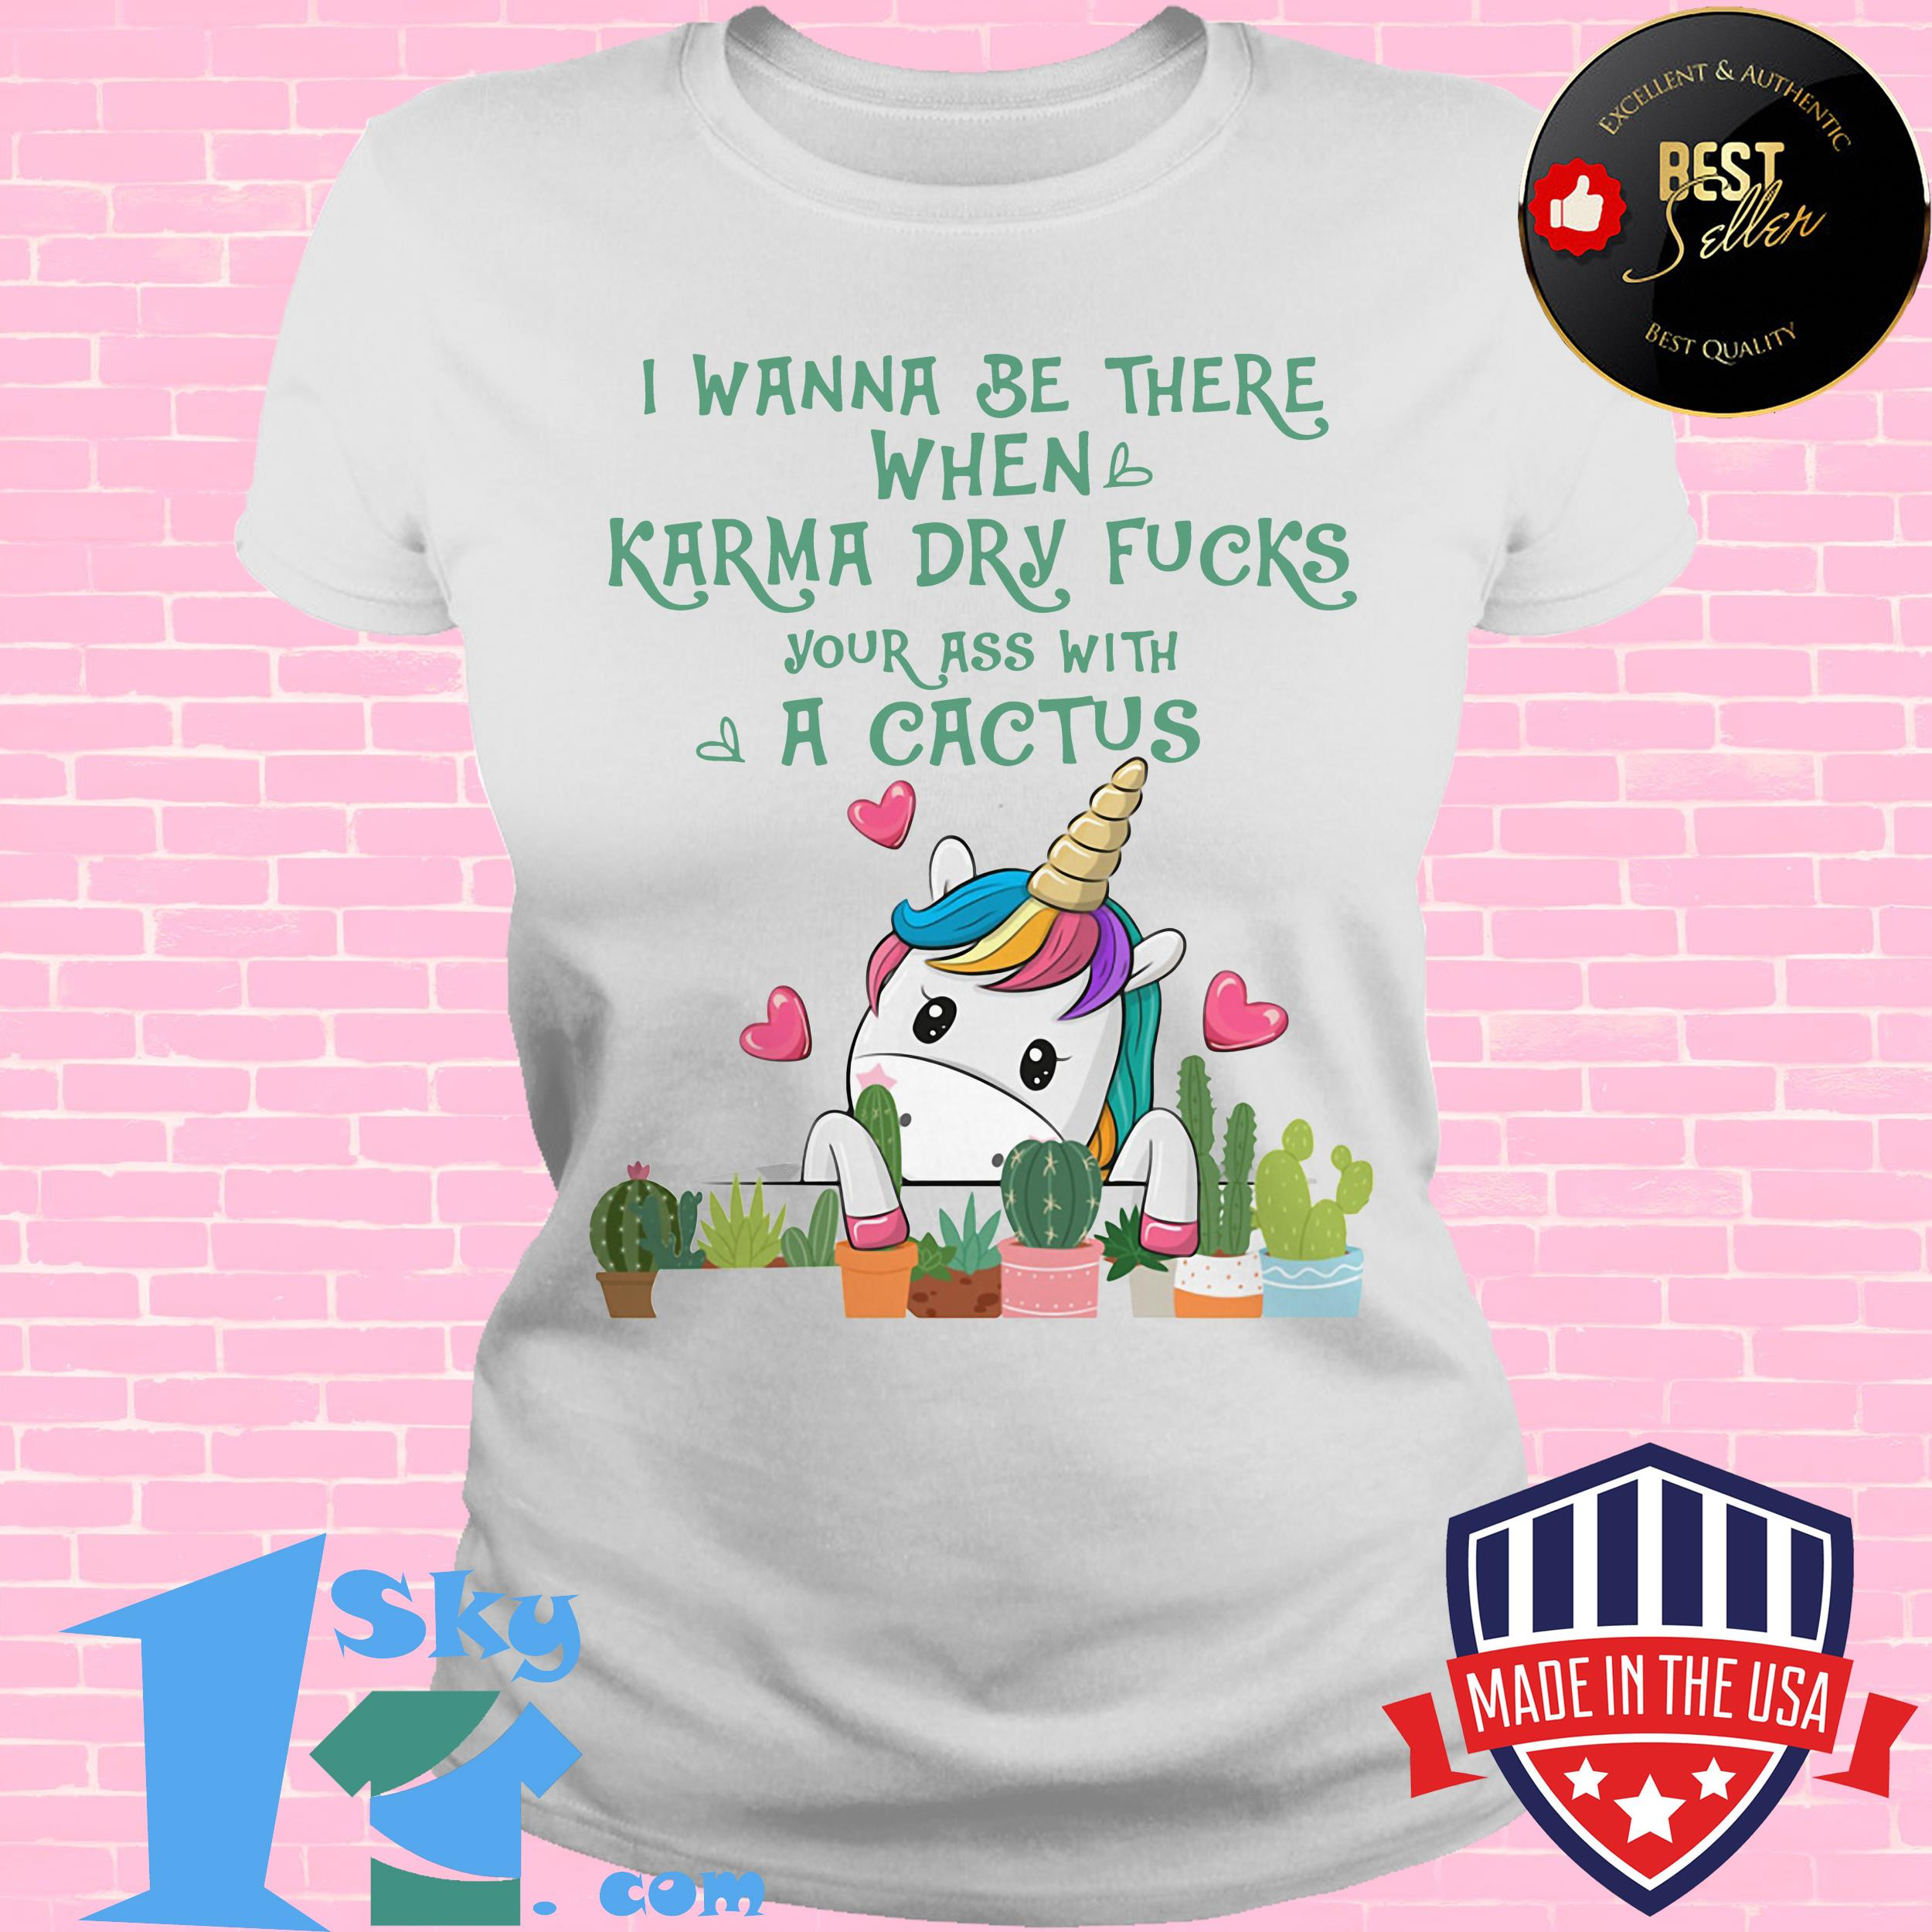 i wanna be there when karma dry fuck your ass with a cactus unicorn ladies tee - I Wanna Be There When Karma Dry Fuck Your Ass With A Cactus Unicorn shirt